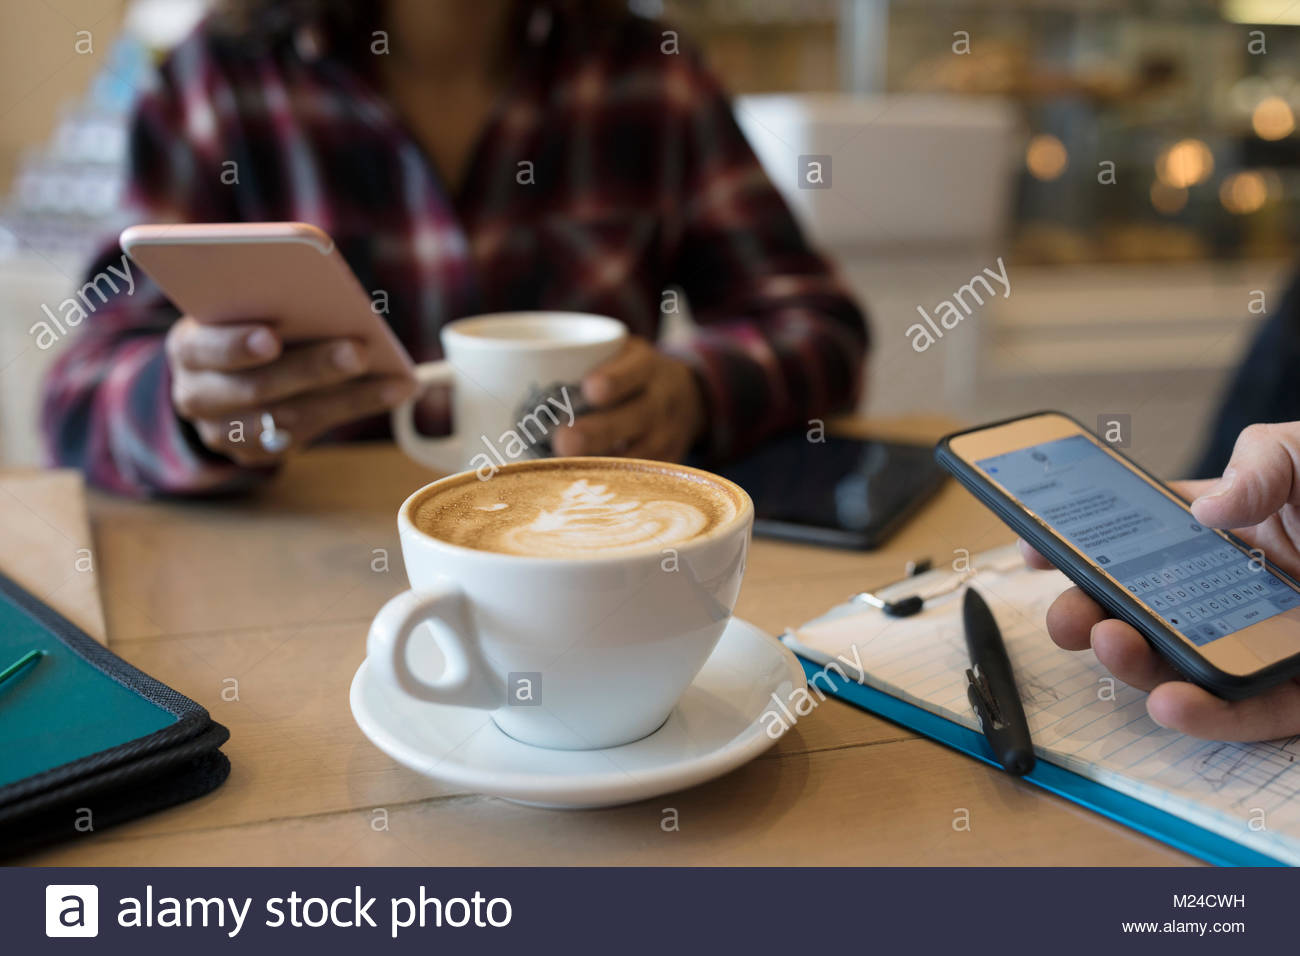 Woman texting with smart phone and drinking cappuccino coffee in cafe - Stock Image